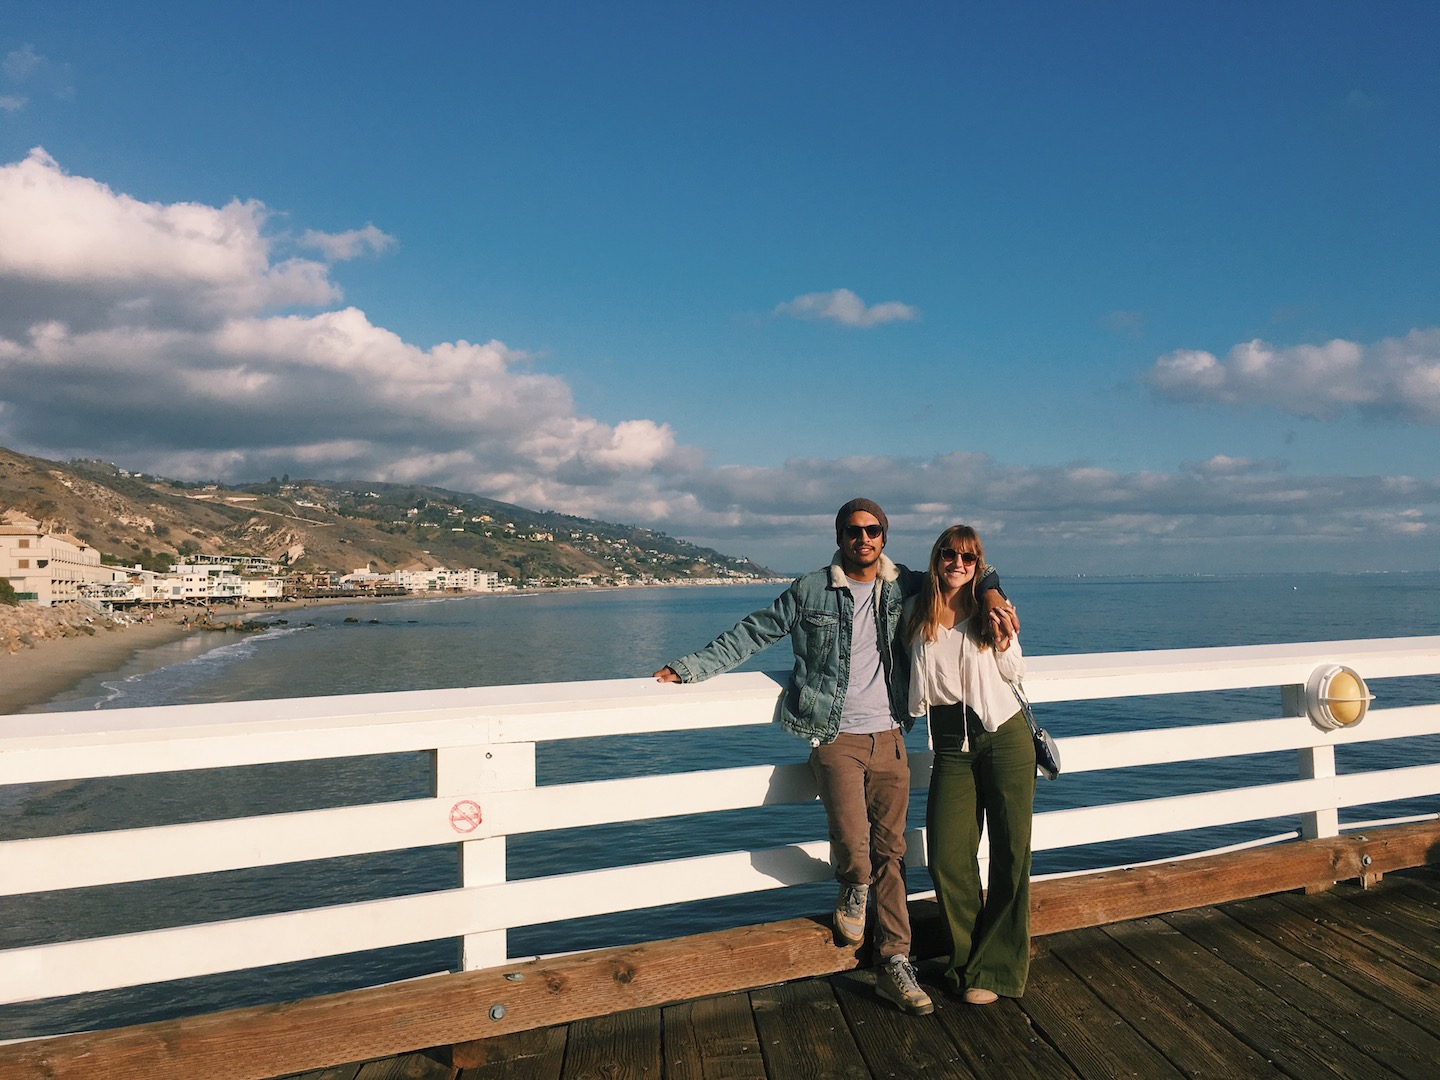 New Years Day spent enjoying the weather in Malibu